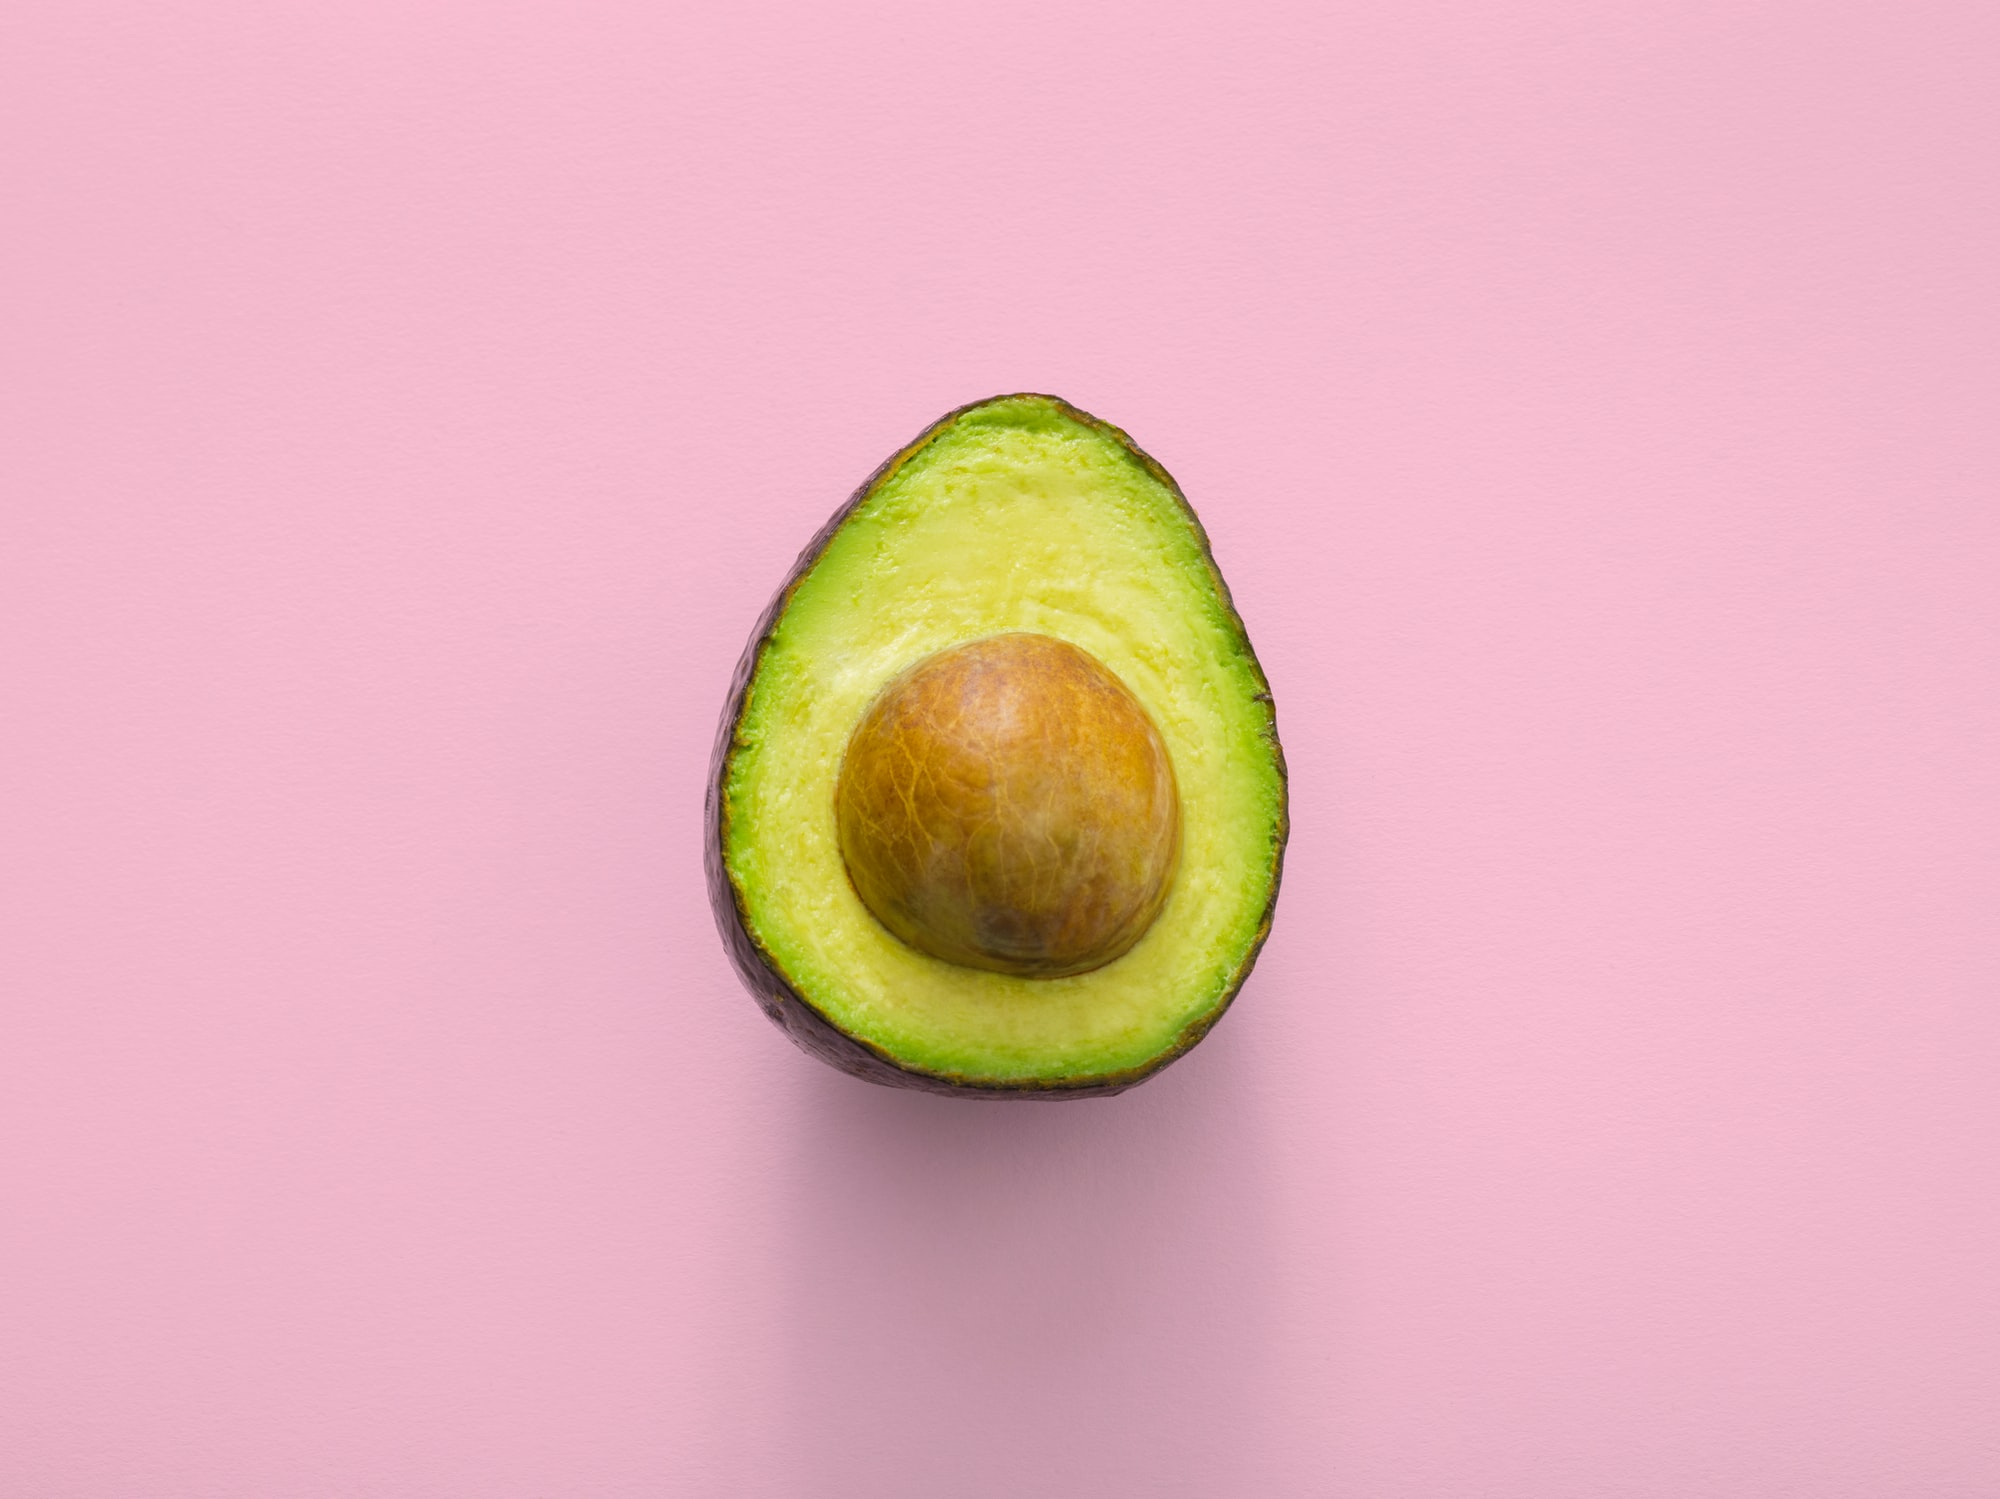 Avocado is a green rainbow food by www.thoughtcatalog.com for Unsplash